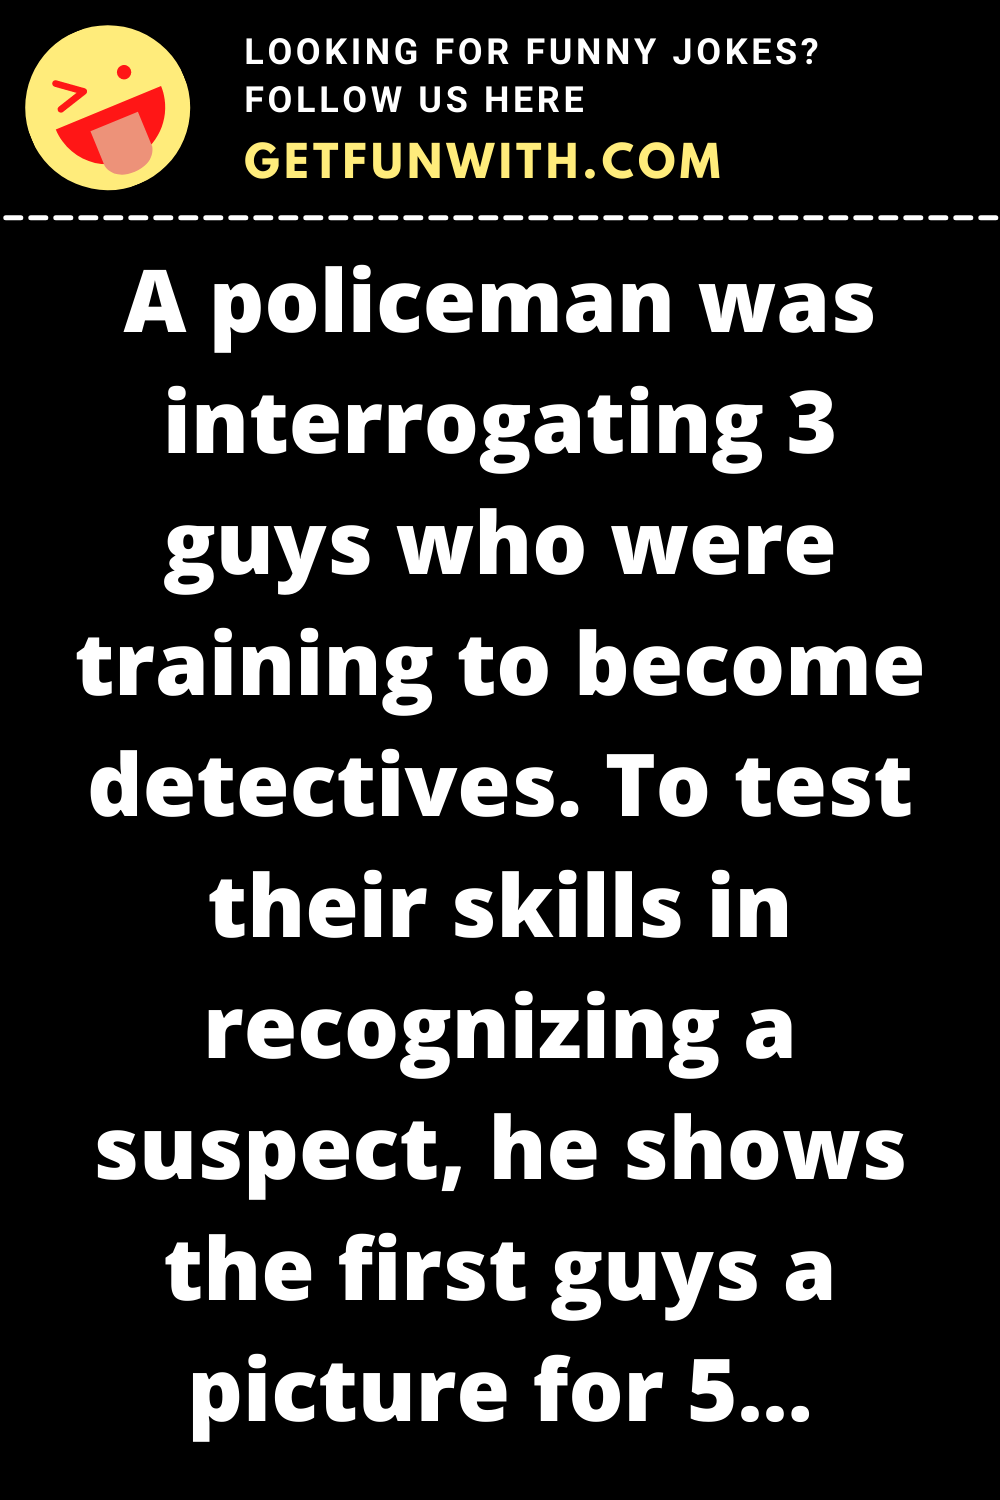 A policeman was interrogating 3 guys who were training to become detectives.